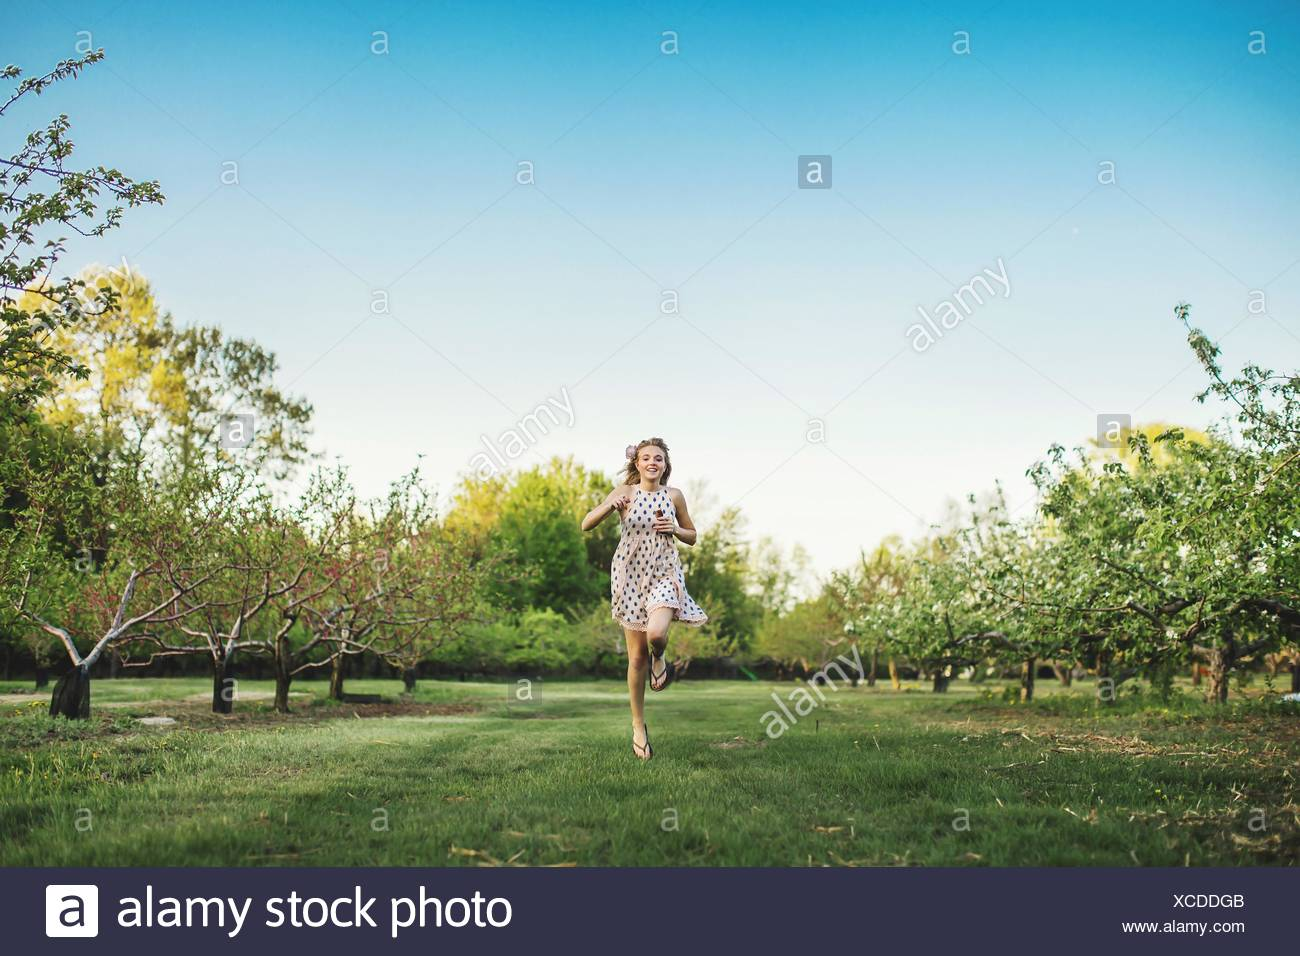 Full length front view of young woman wearing sleeveless dress running through orchard, looking at camera smiling - Stock Image